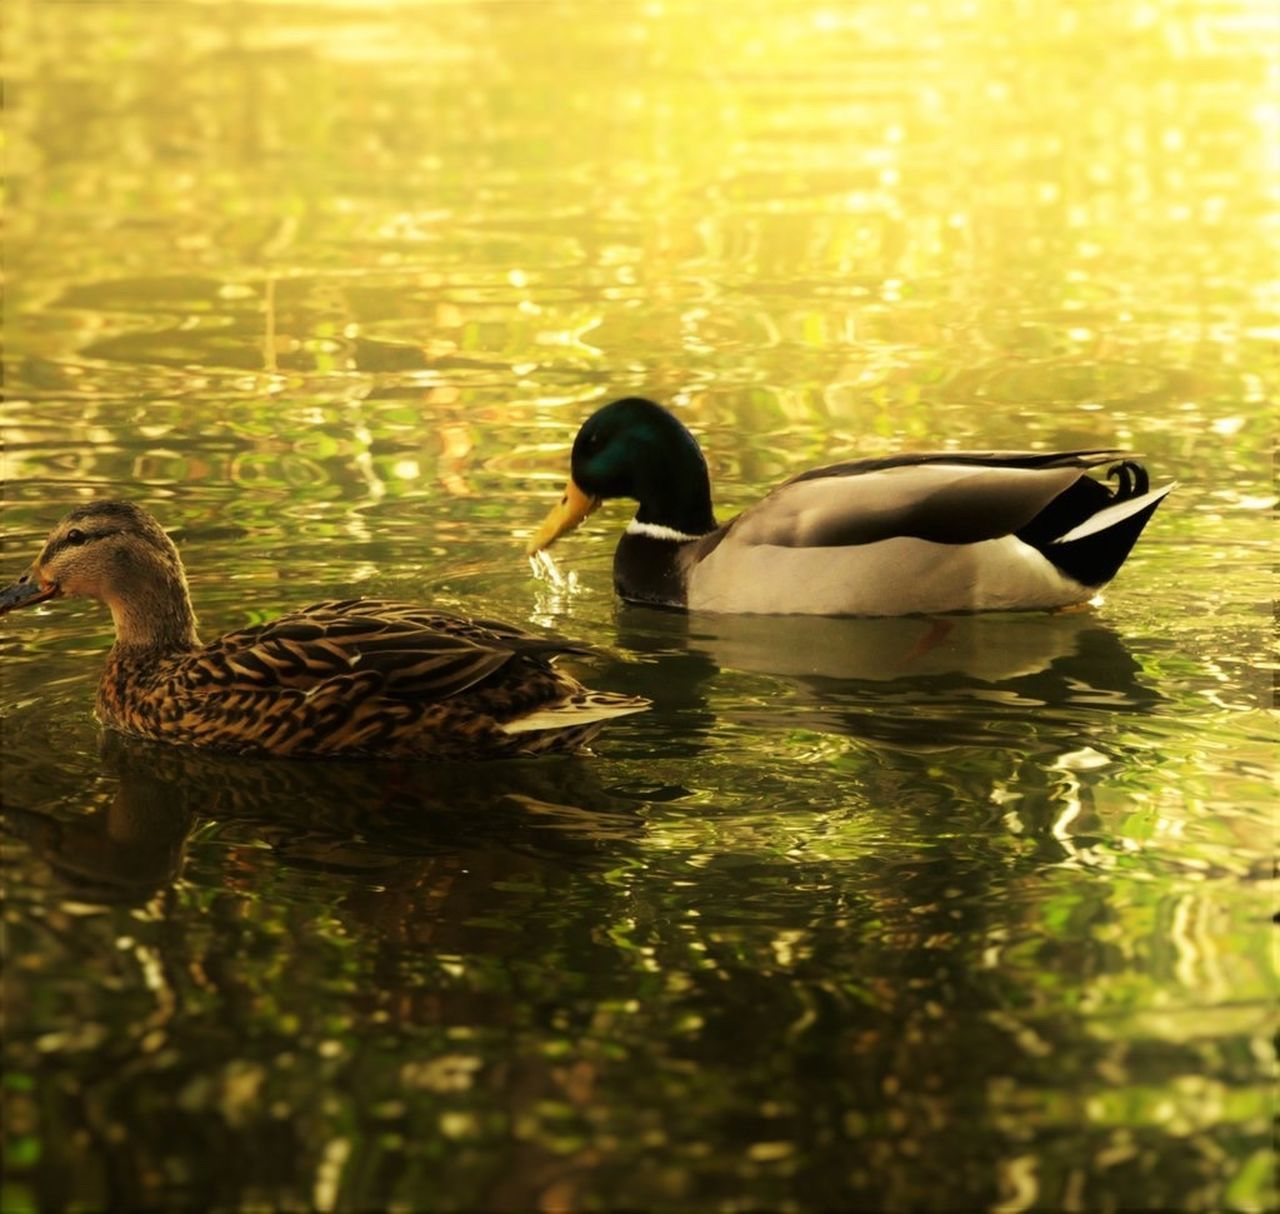 bird, water, animal themes, two animals, duck, animals in the wild, female animal, swimming, reflection, young bird, young animal, lake, animal family, waterfront, nature, water bird, no people, togetherness, beauty in nature, outdoors, day